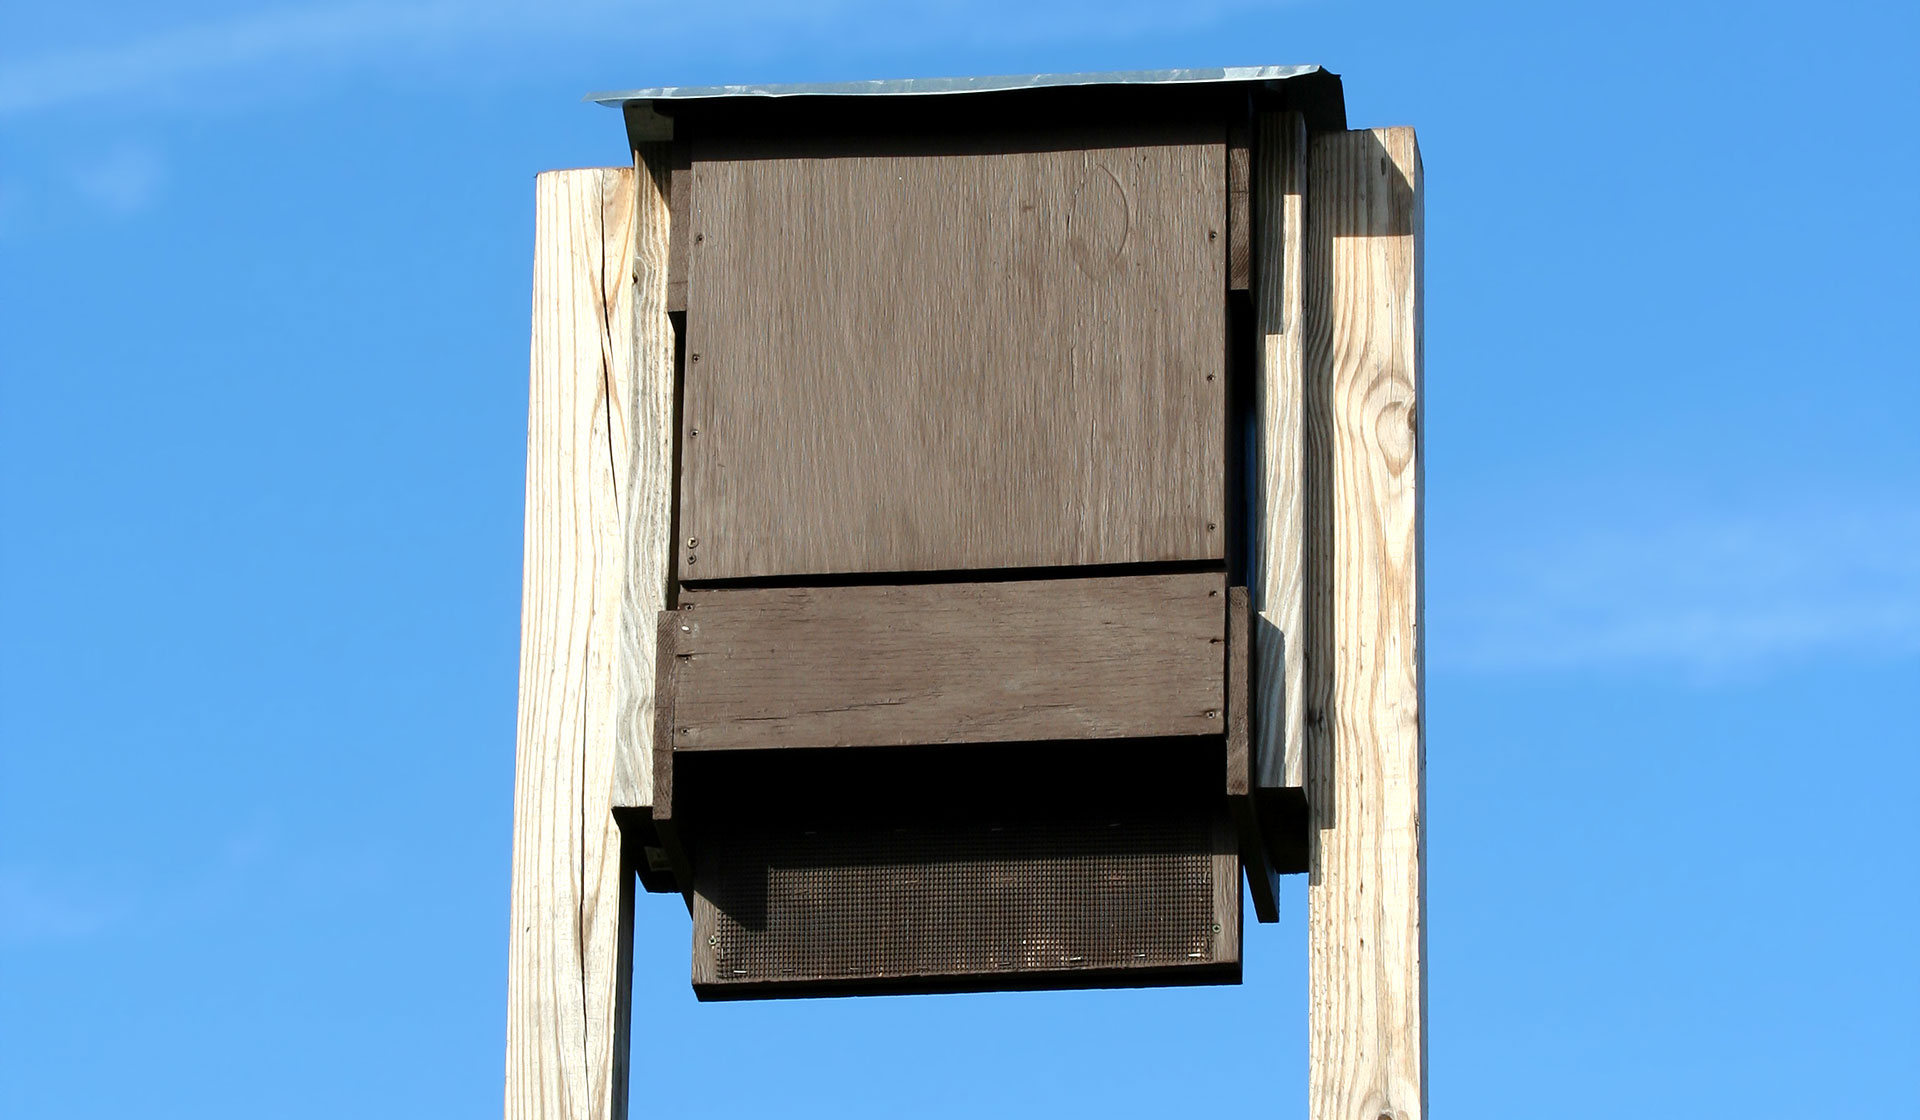 Bats Steady Consumption Of Insect Pests Makes Adding A Bat House To Your Yard Not Only Good For But Smart Choice You